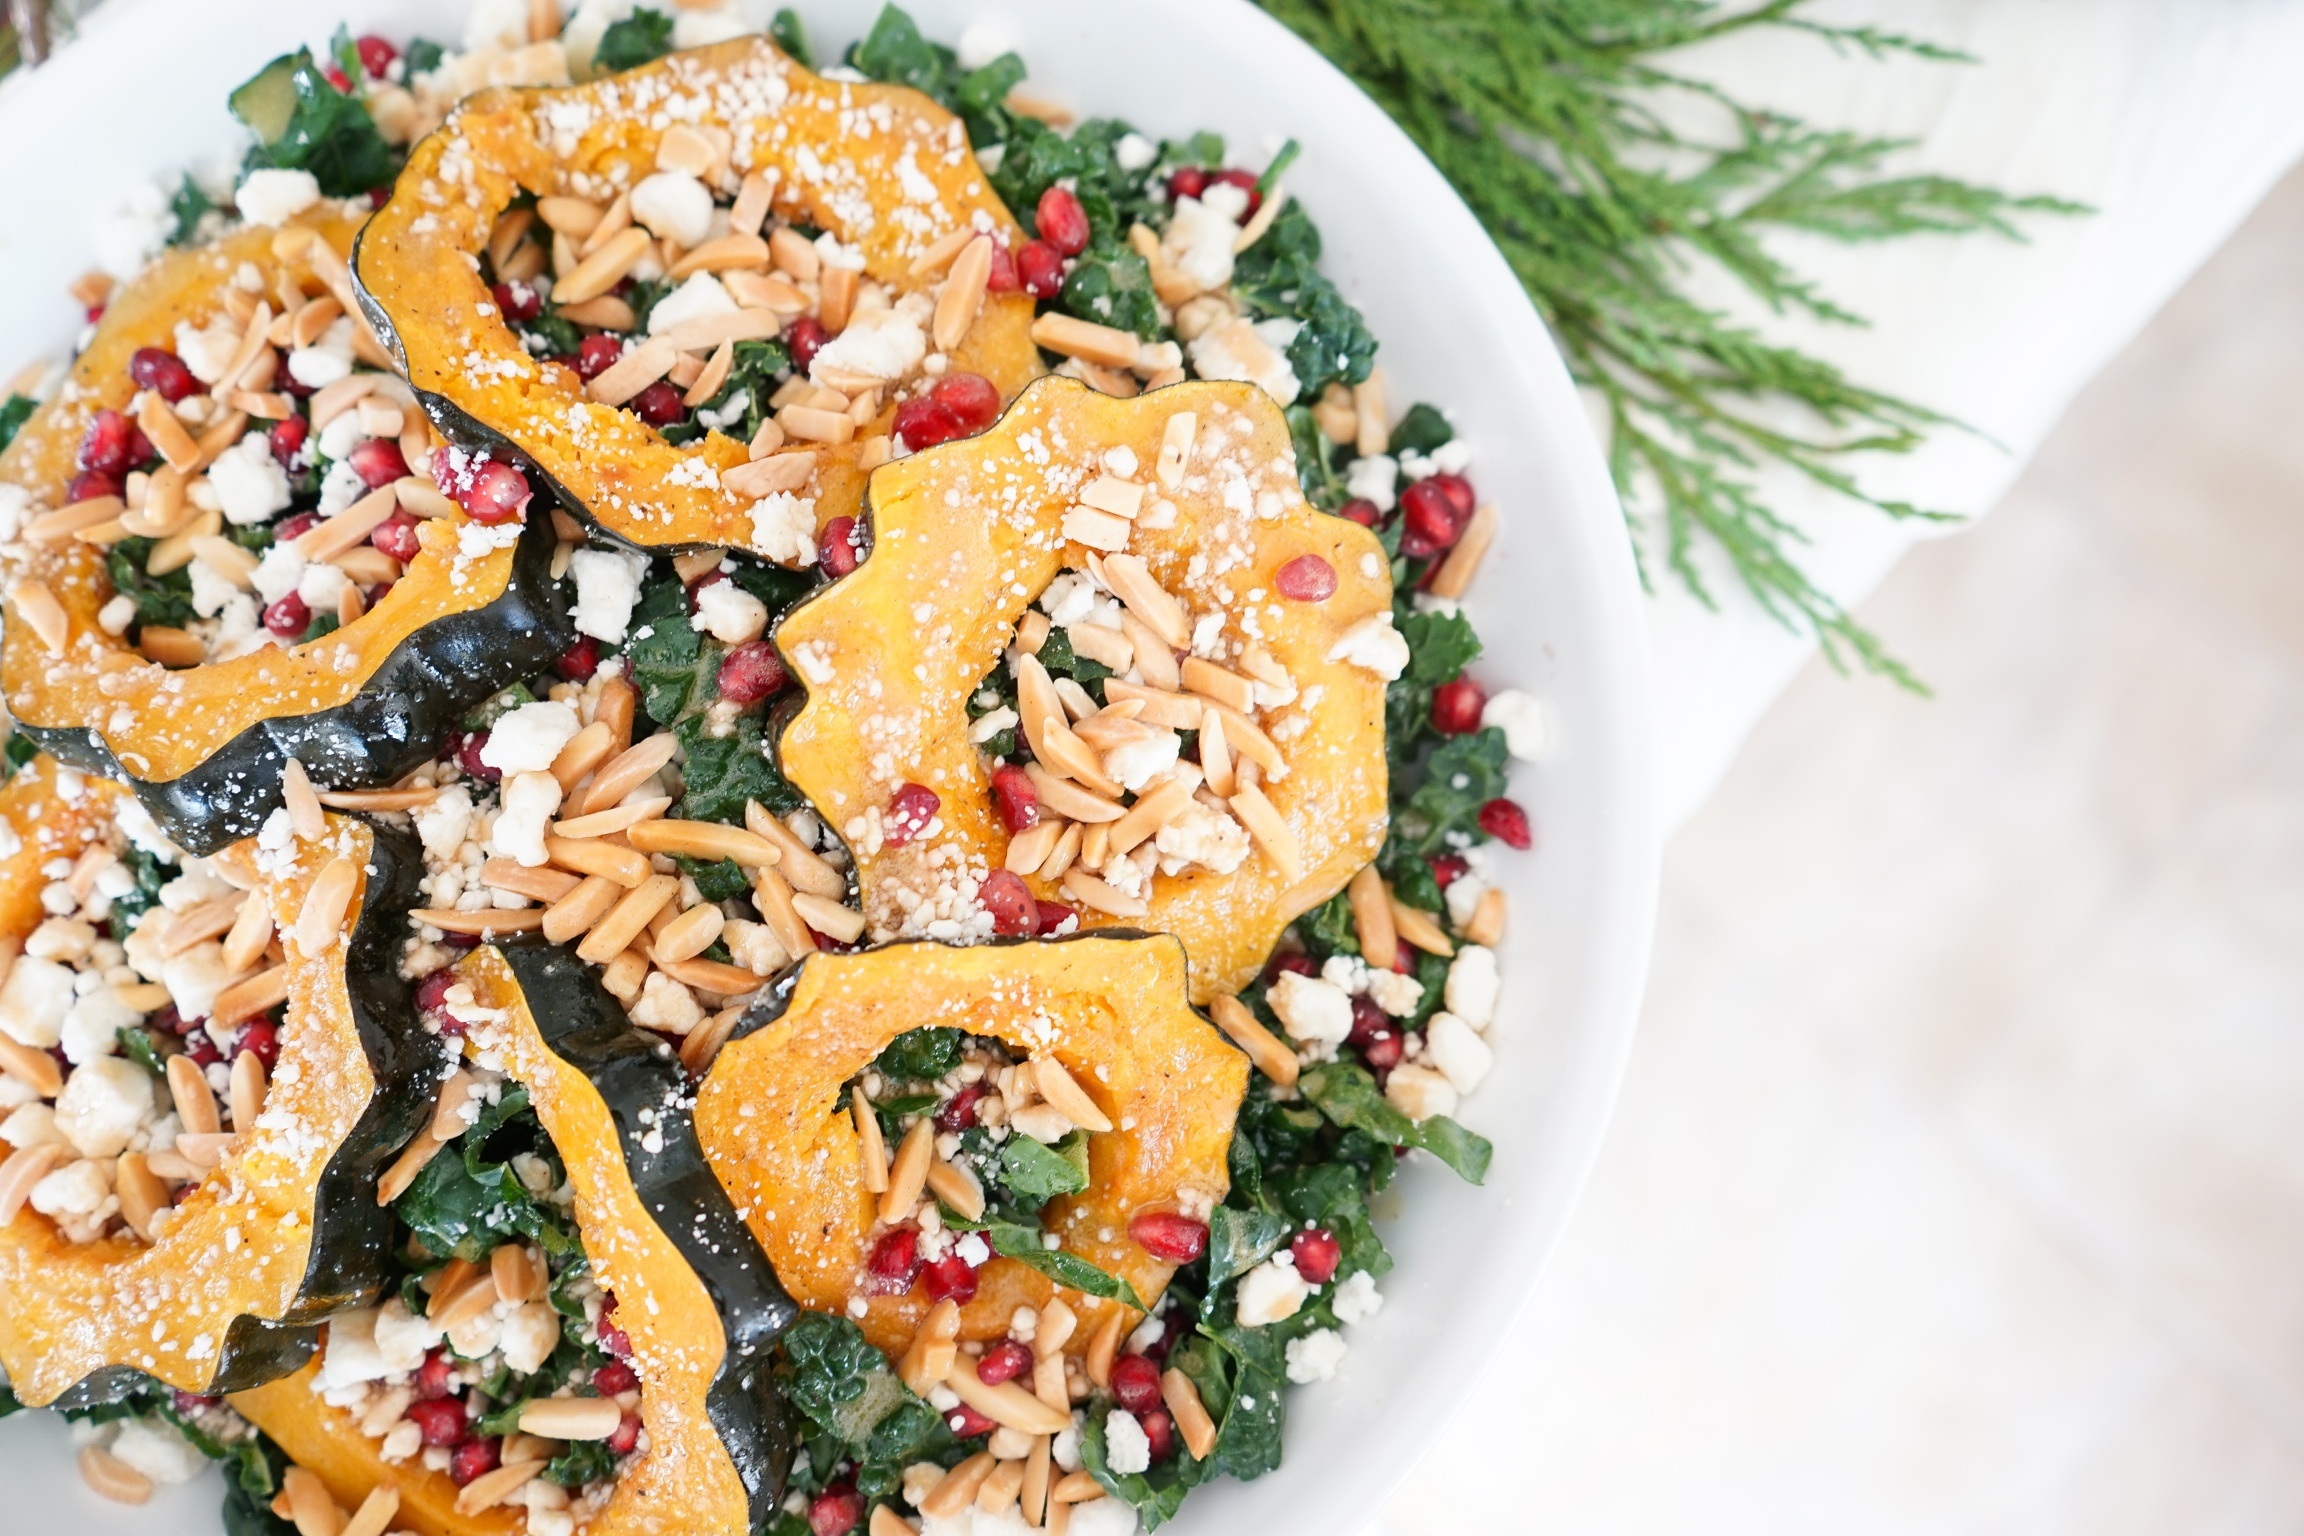 Vibrant winter squash salad